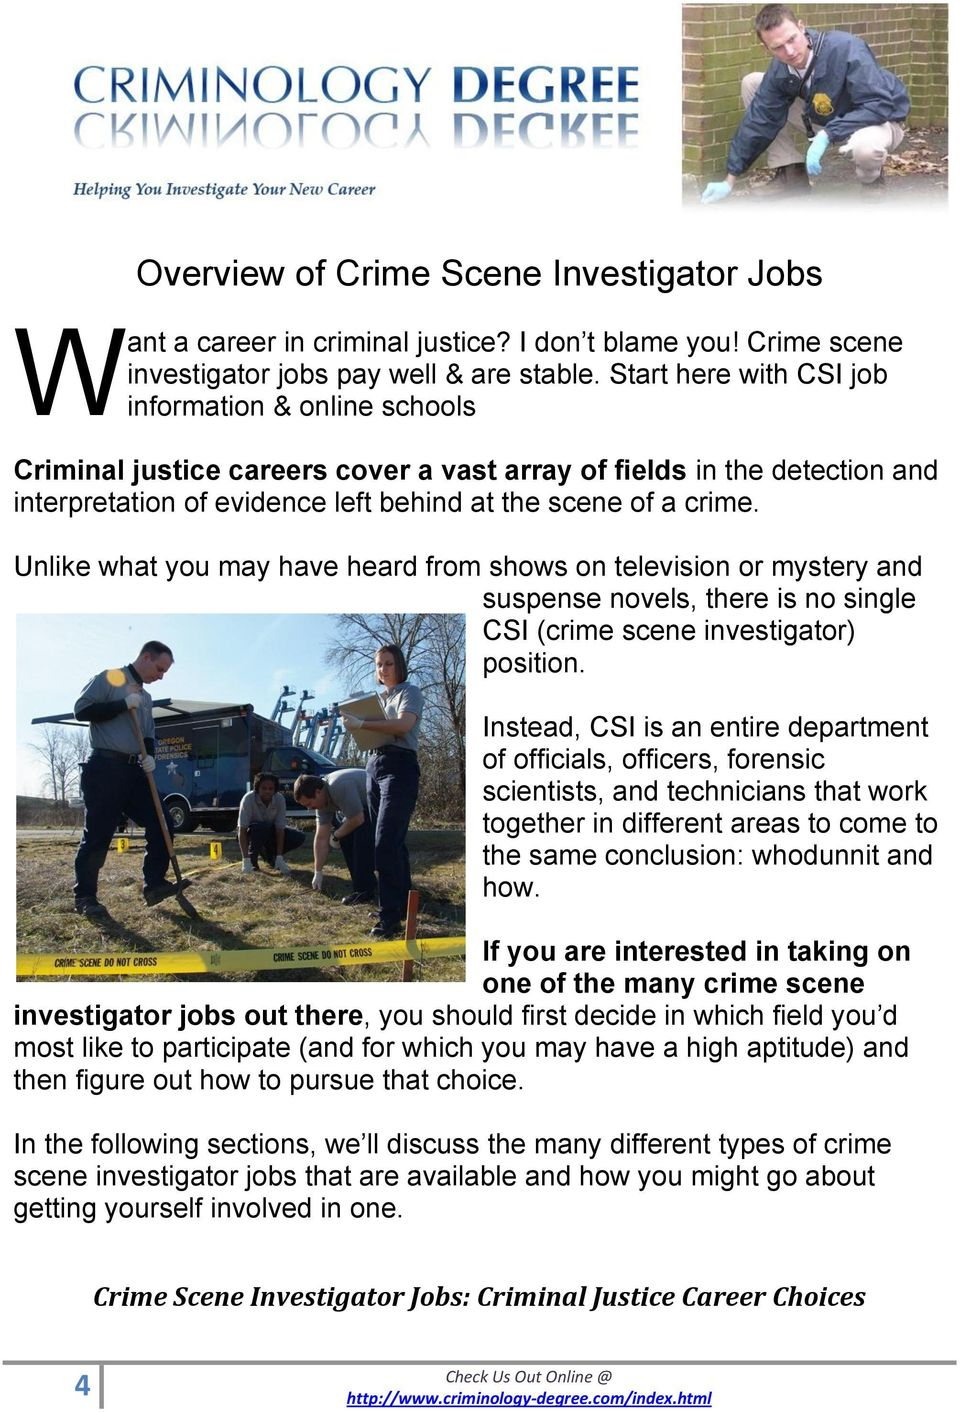 Unlike what you may have heard from shows on television or mystery and suspense novels, there is no single CSI (crime scene investigator) position.